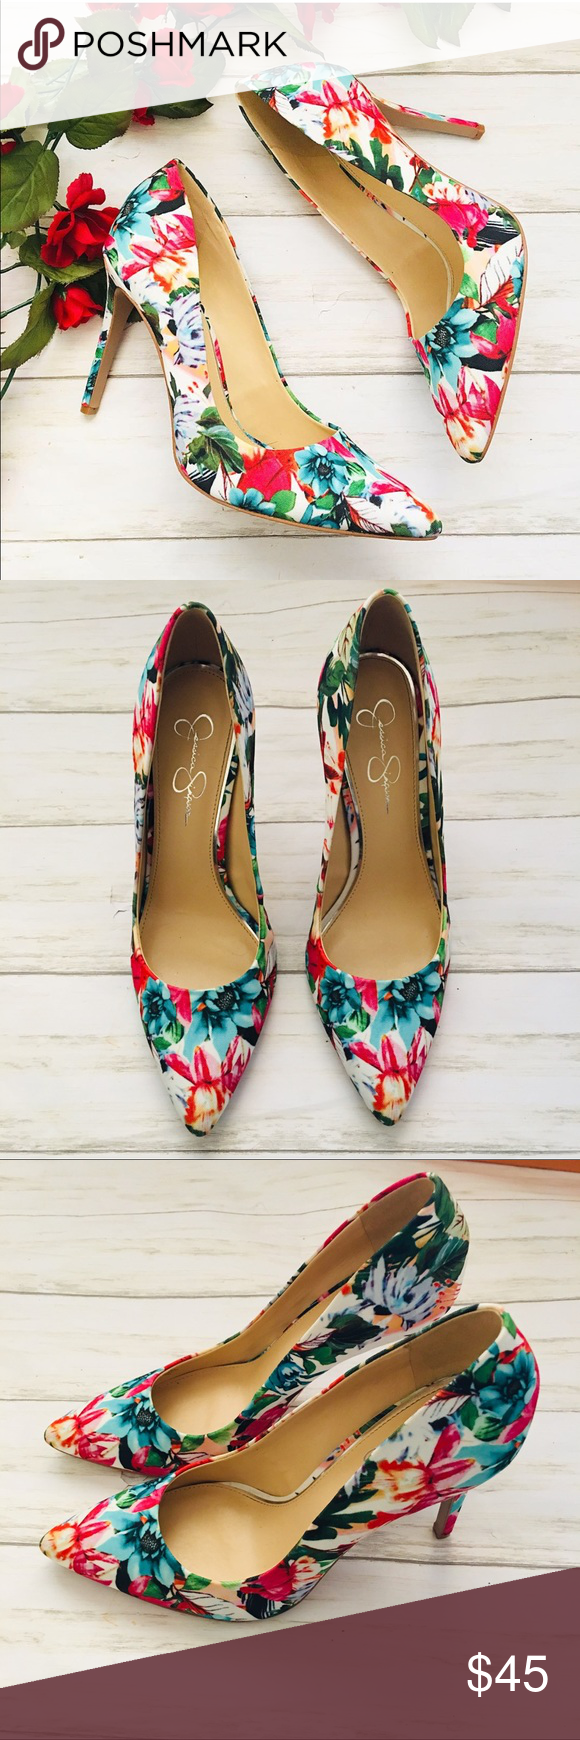 eba1d27141 Jessica Simpson| Floral Heels| Size 10 Jessica Simpson| Purla Floral Heels|  Size 10 Great condition Perfect for spring and summer Style comes with ease  ...